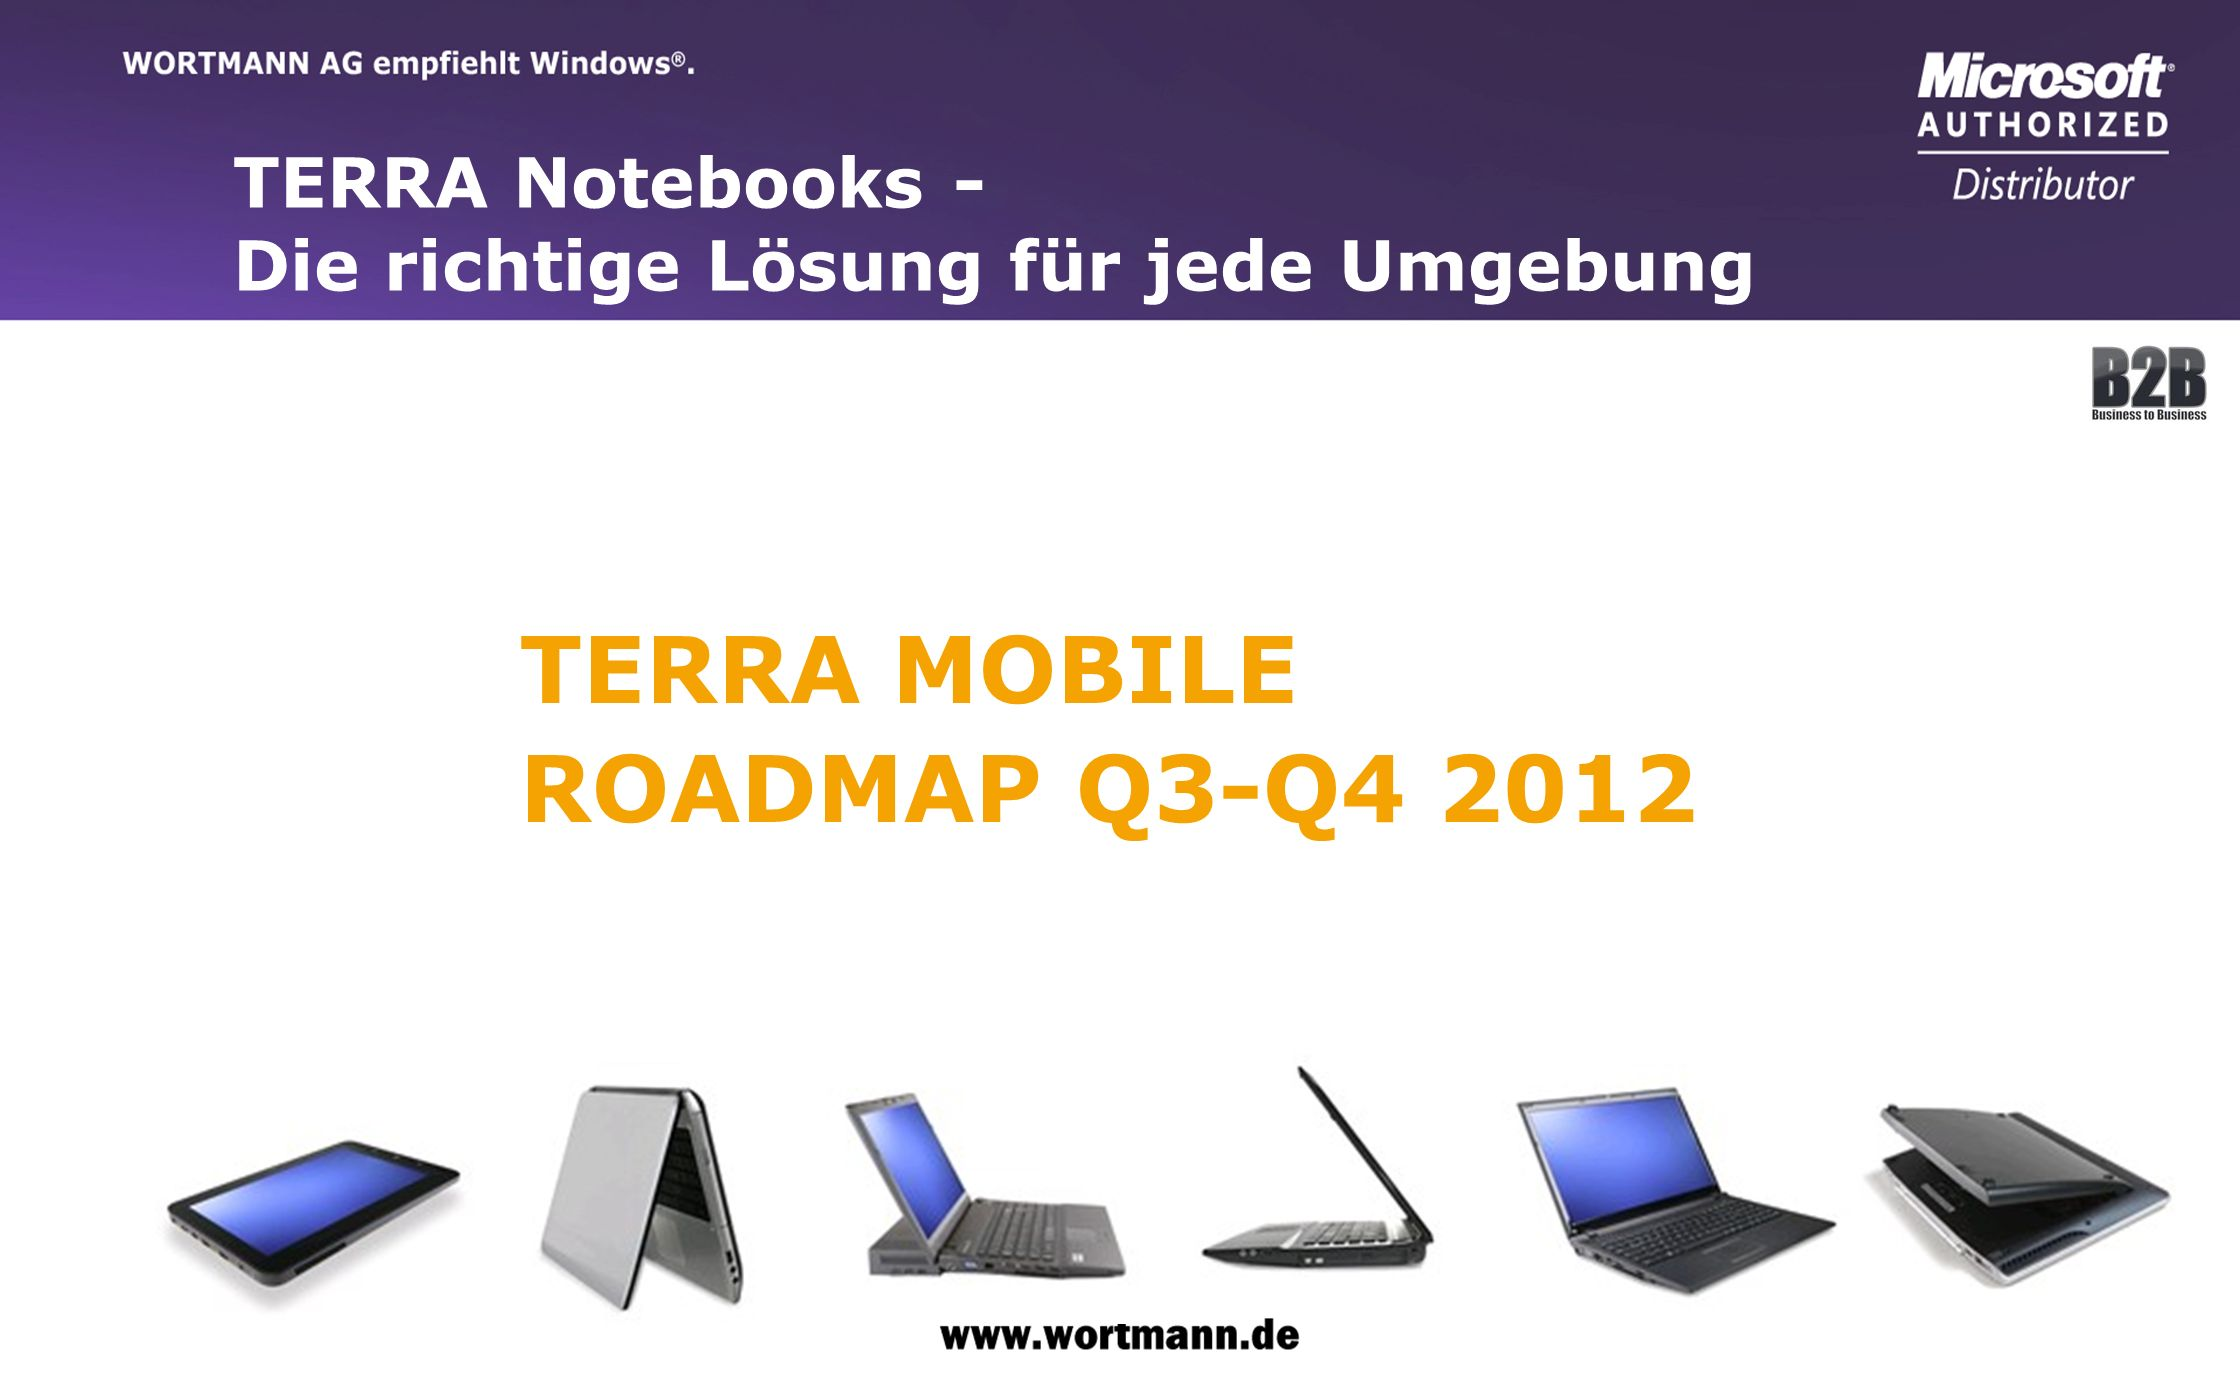 TERRA MOBILE ROADMAP Q3-Q4 2012 TERRA Notebooks -